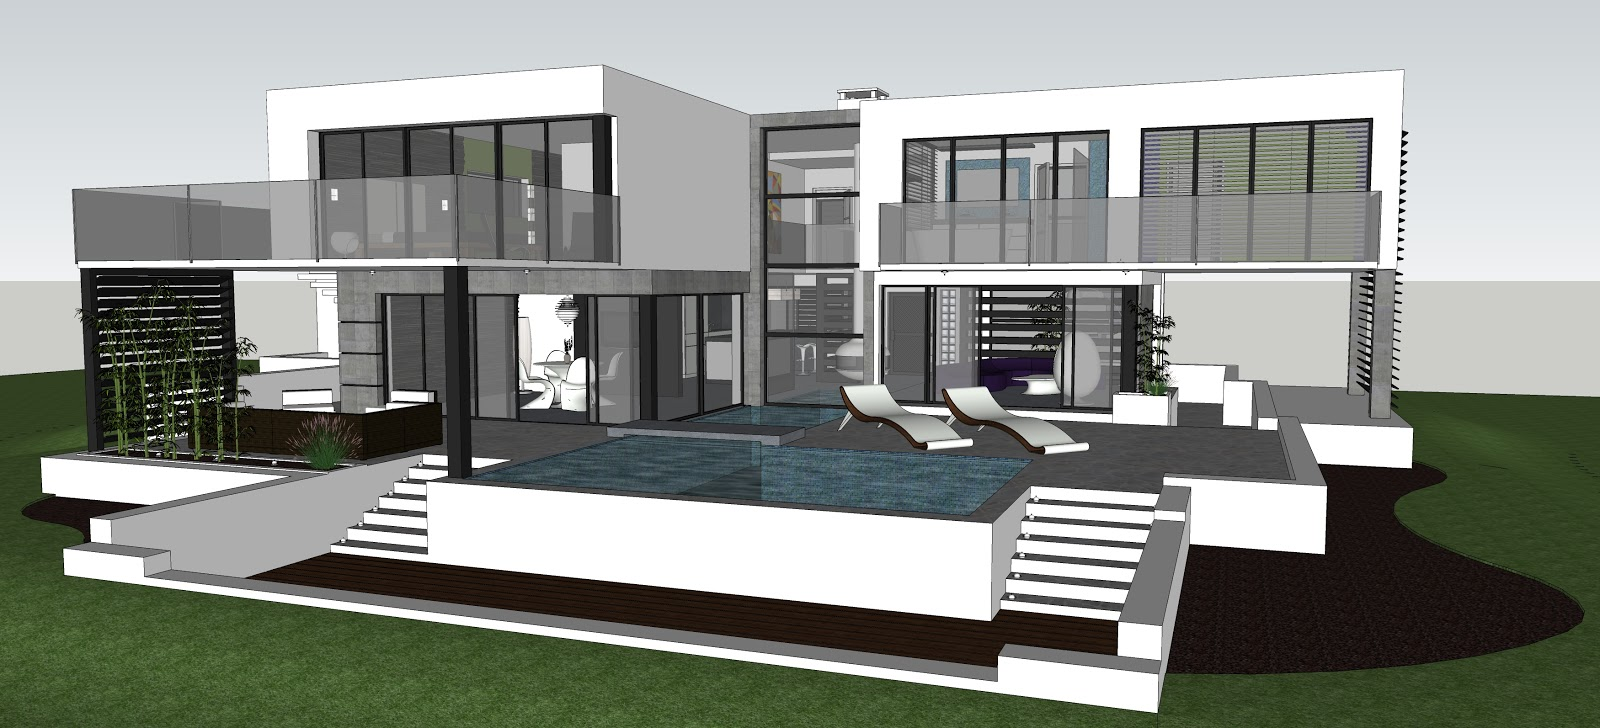 House rendering day and night scene kyra illustration for Pool design sketchup